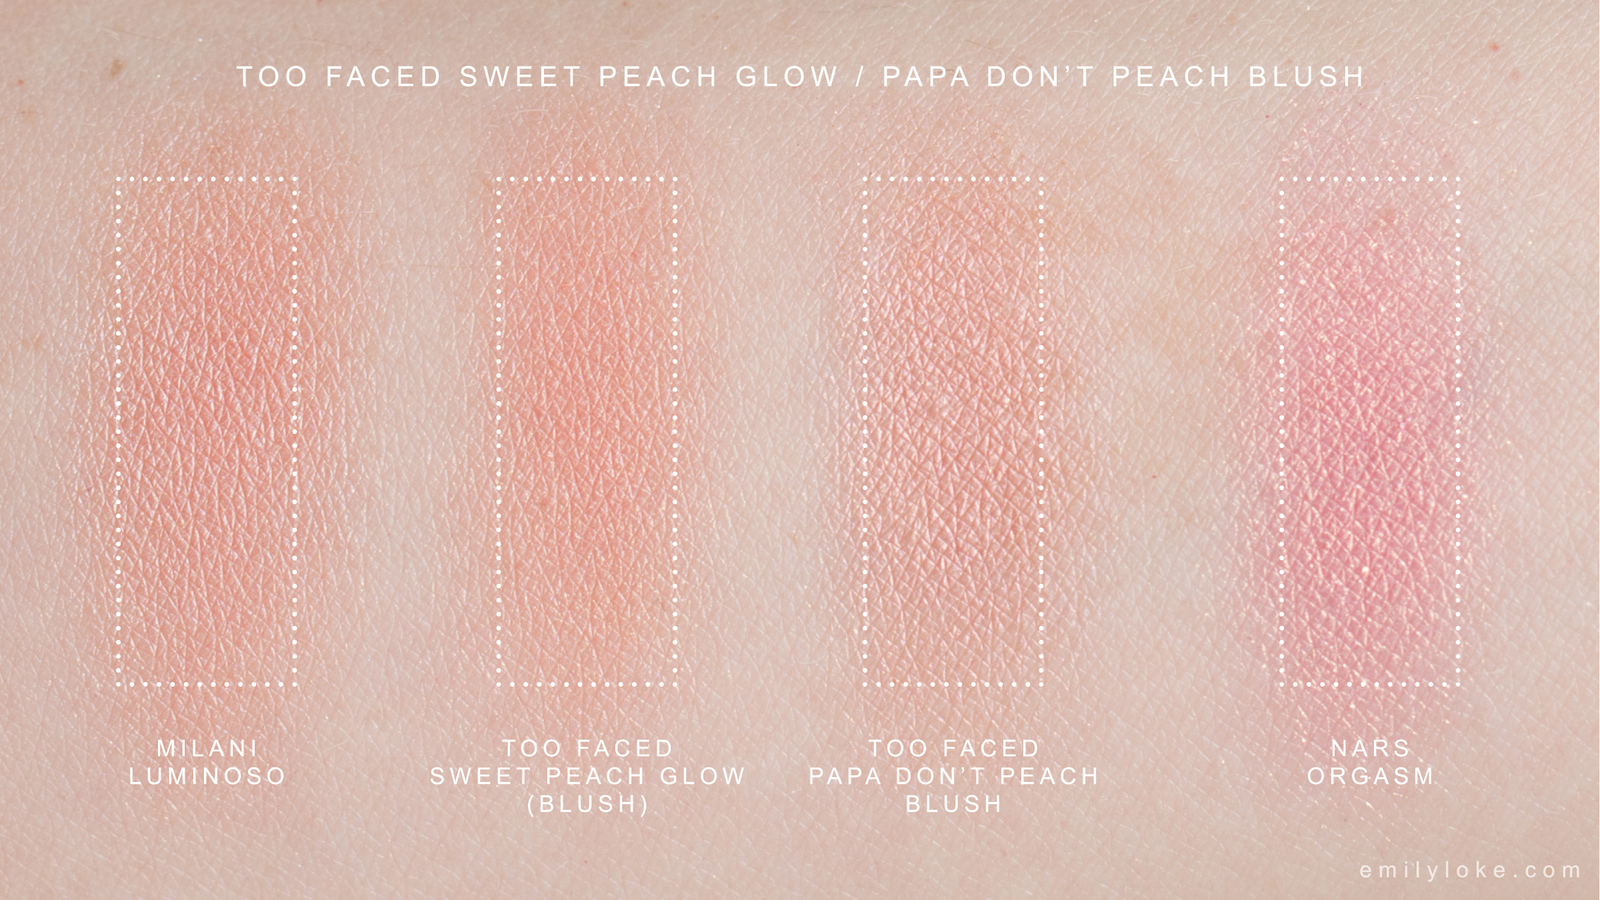 Too Faced Sweet Peach Glow Papa Don't Peach swatches 2